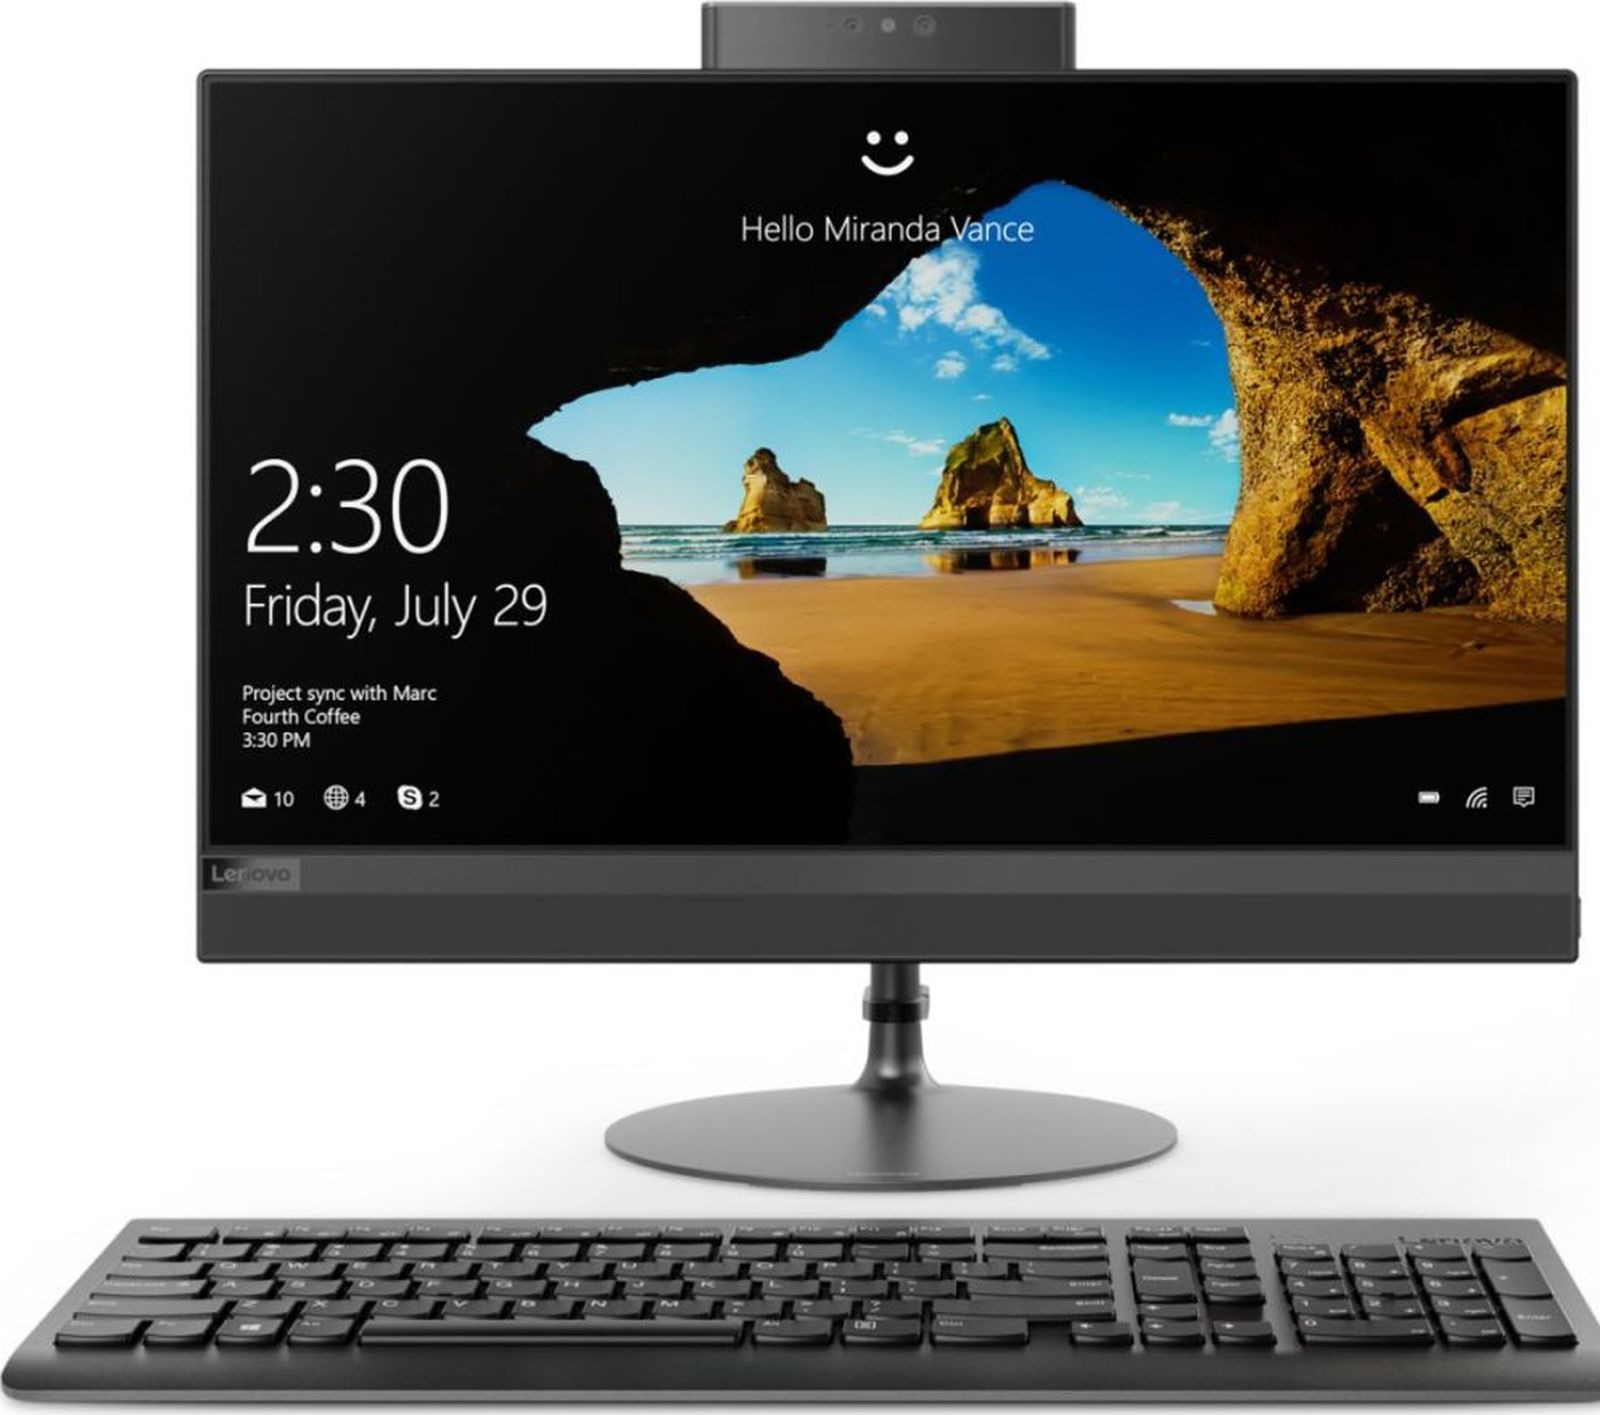 Моноблок Lenovo IdeaCentre 520-24ICB 23.8 Full HD P 5400T (3.1)/4Gb/1Tb 7.2k/UHDG 610/DVDRW/CR/Free DOS/GbitEth/WiFi/BT/90W/клавиатура/мышь/Cam/черный 1920x1080 моноблок hp proone 400 g2 20 hd p g4400t 2 9 4gb 500gb 7 2k hdg510 dvdrw windows10 single language 64 eth wifi bt 90w клавиатура мышь cam черный